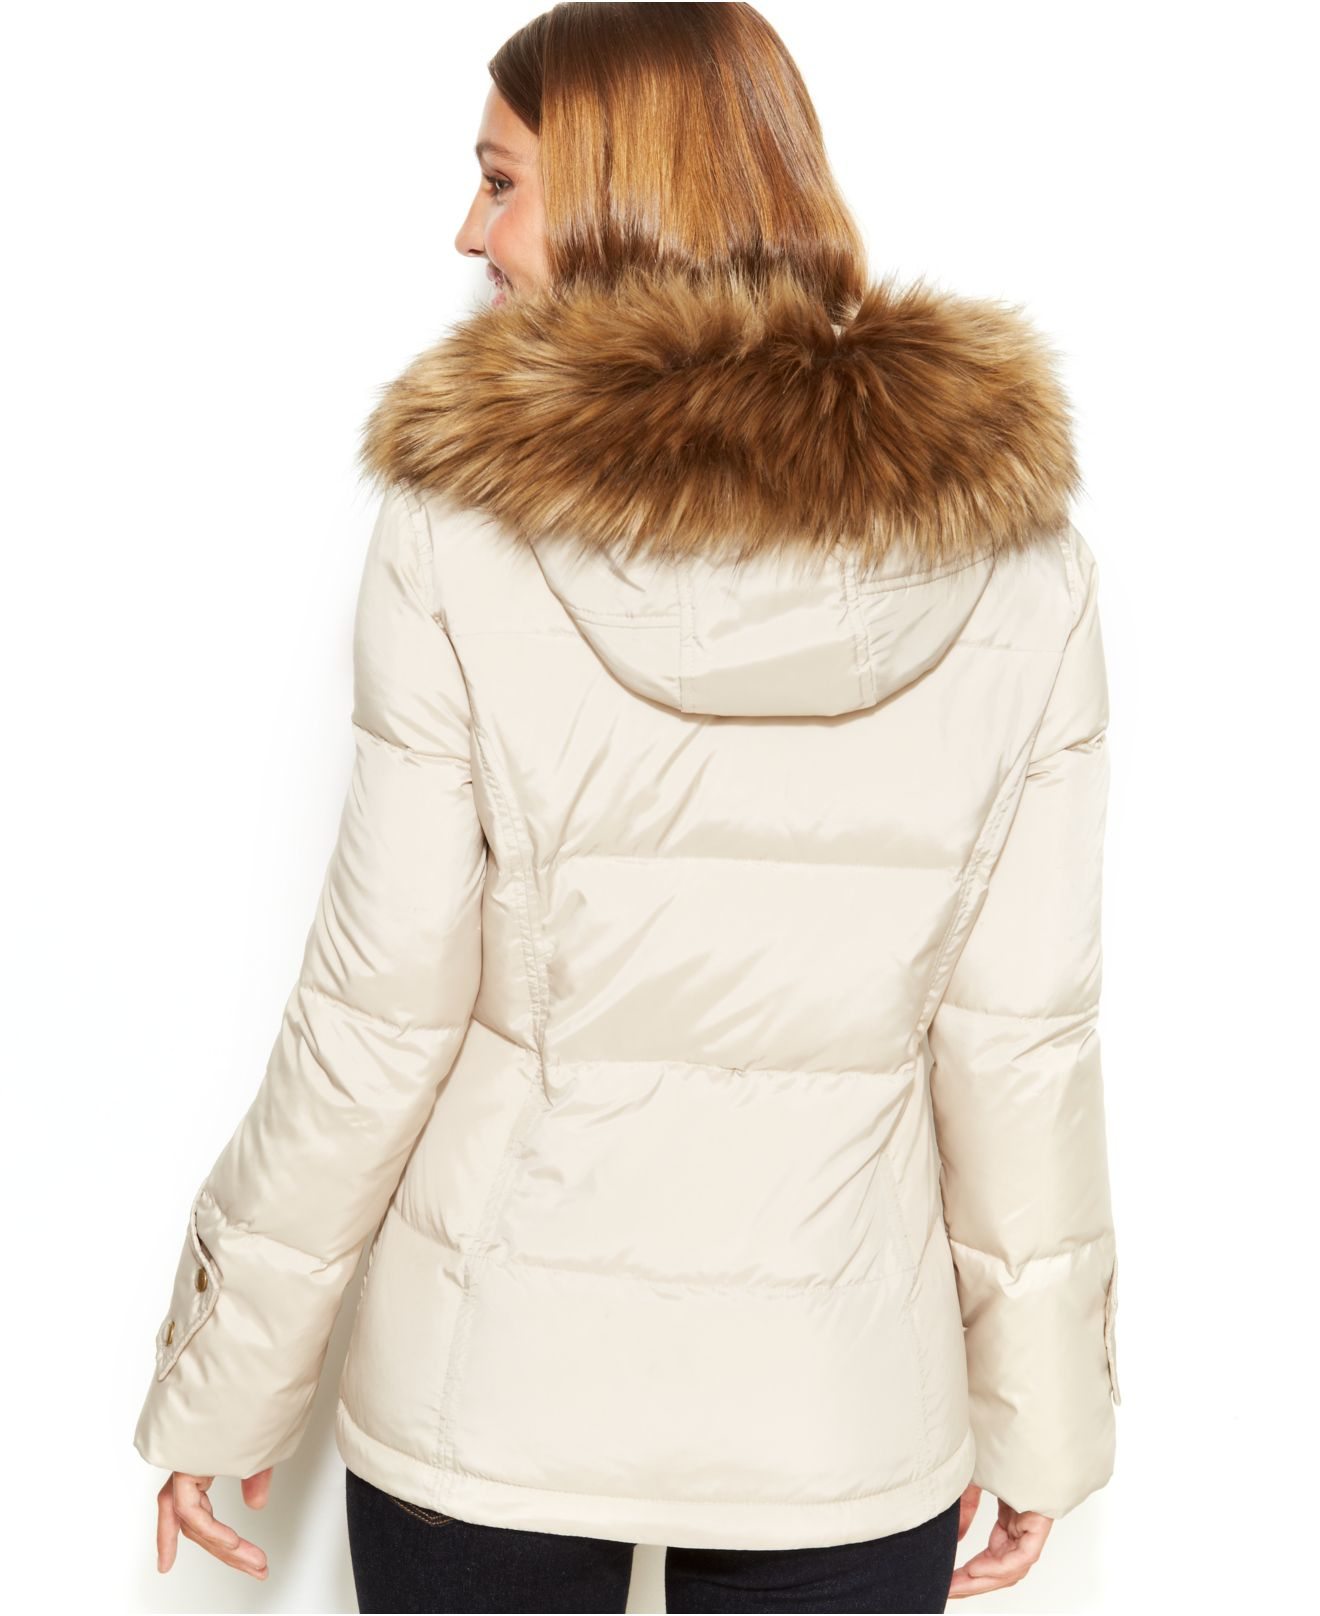 Lyst - Calvin Klein Hooded Faux-Fur-Trim Quilted Puffer ...